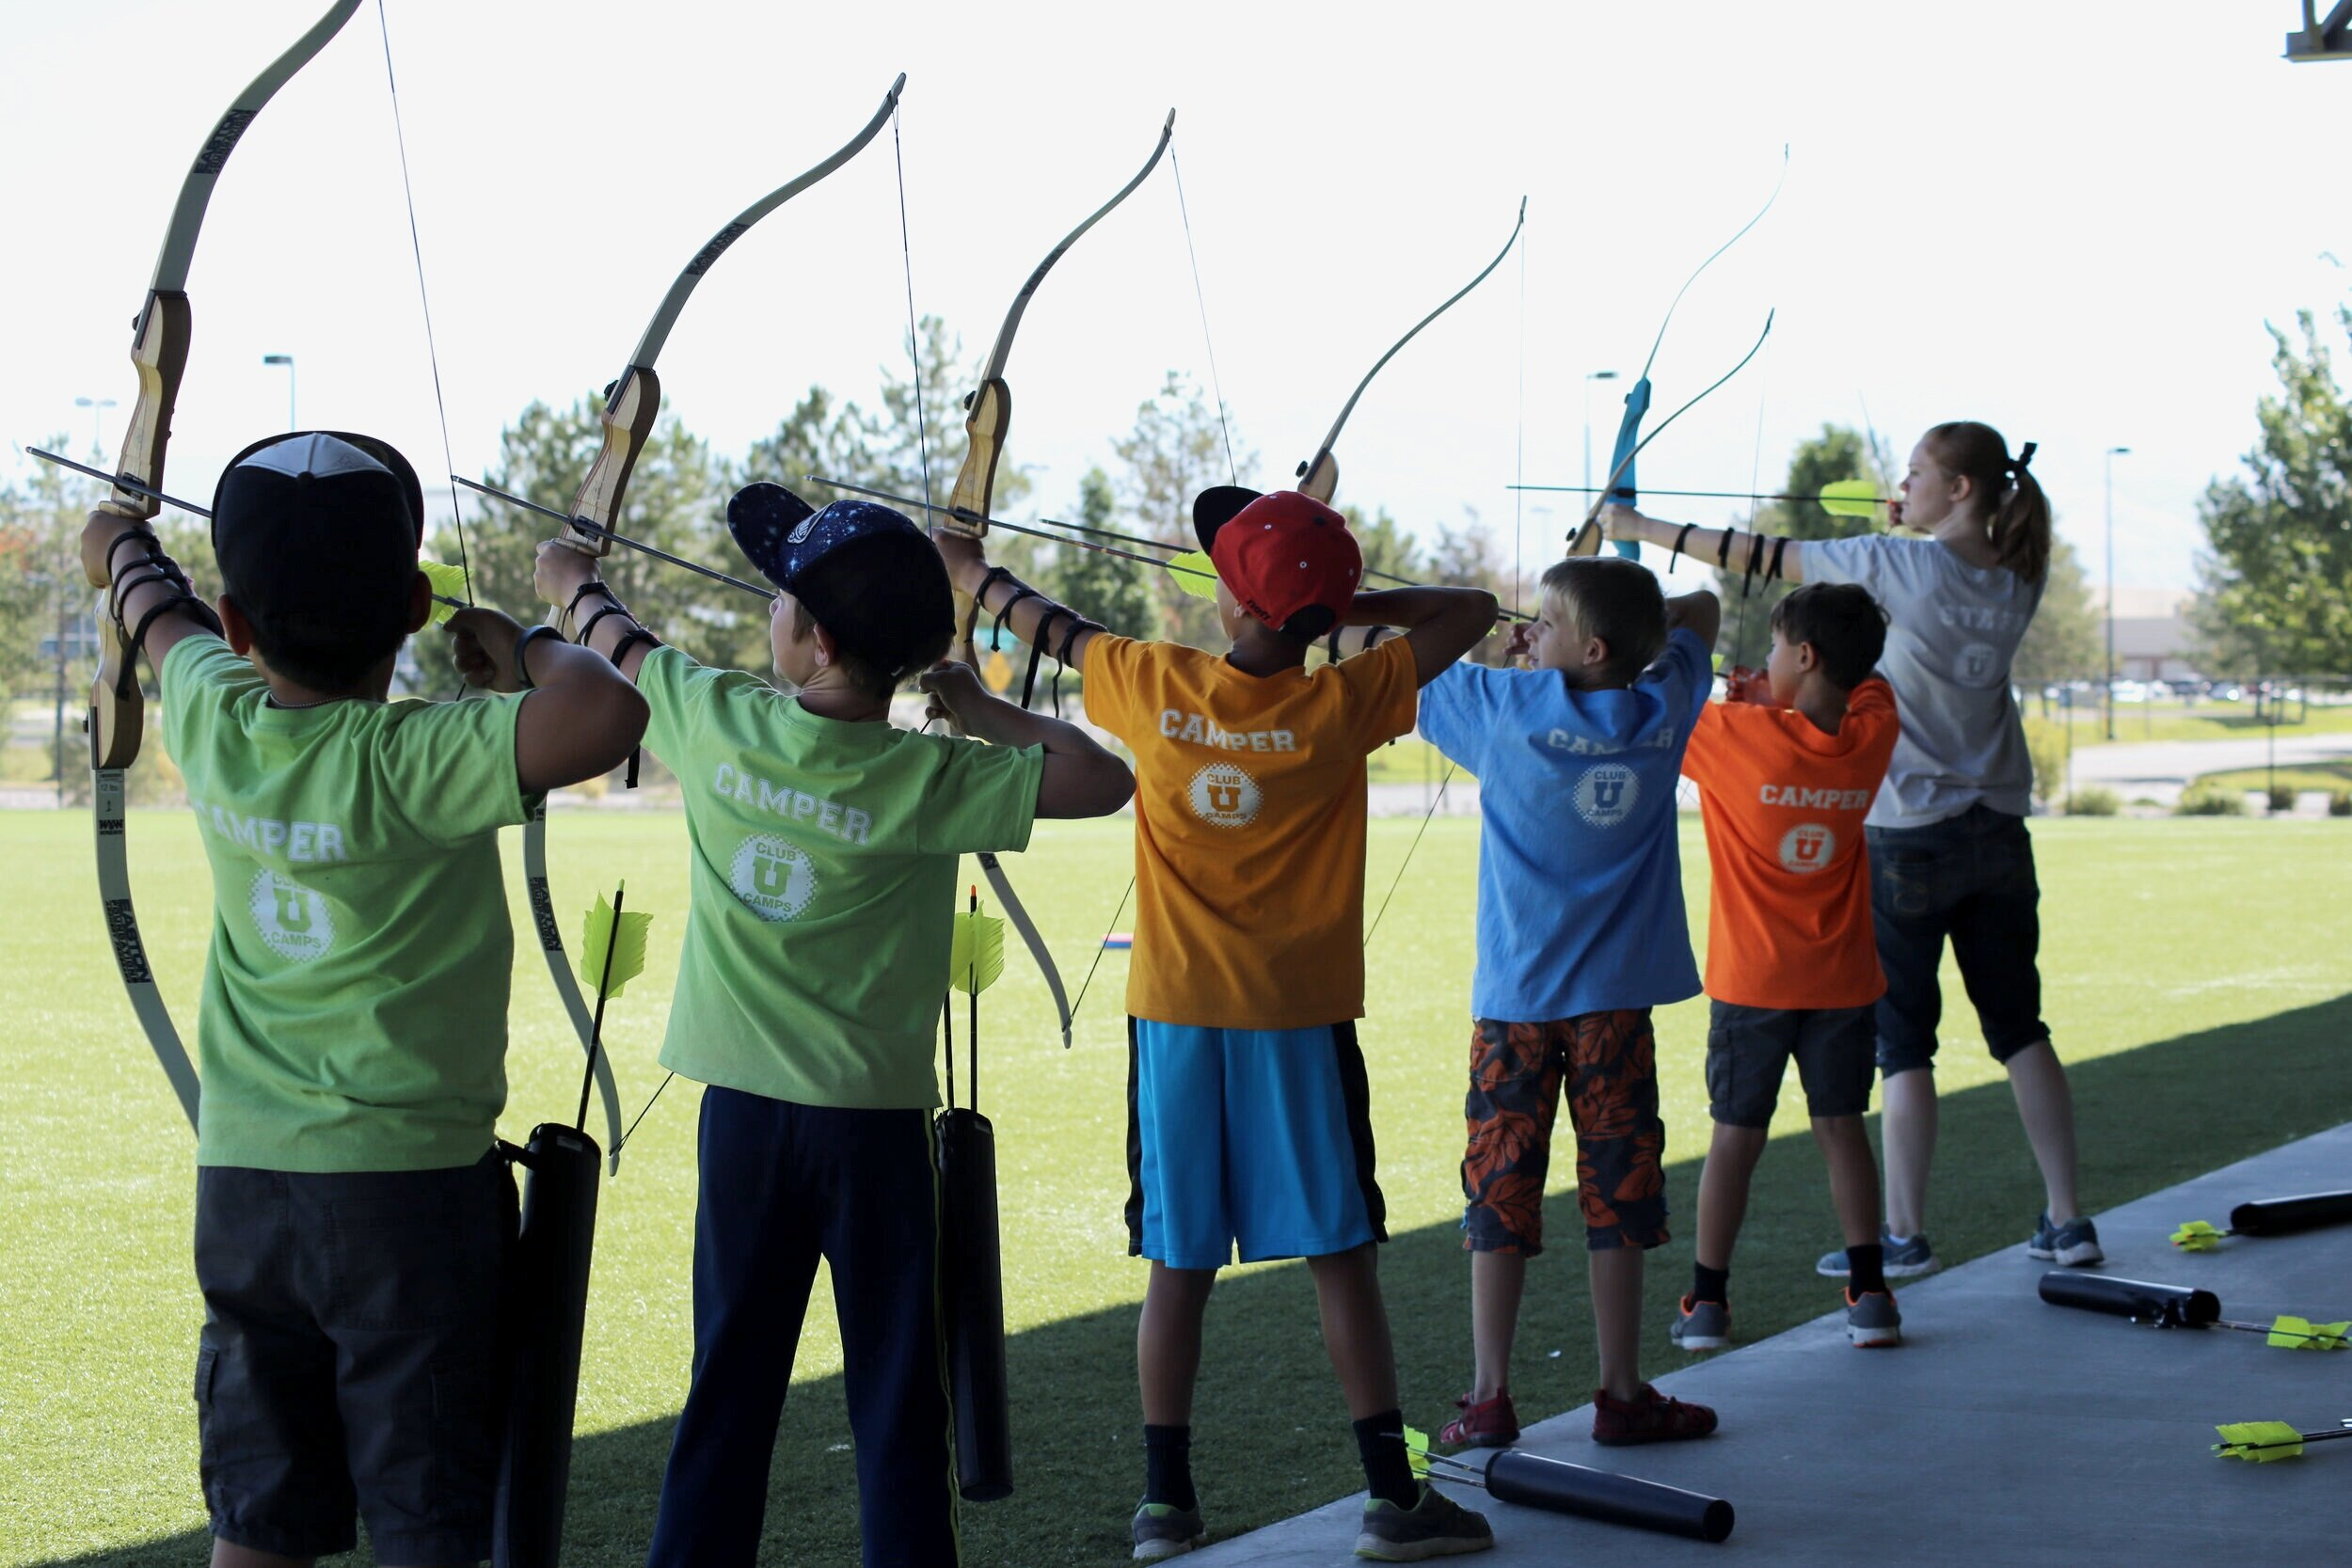 Archery's Positive Impact - How good you get depends on how you start